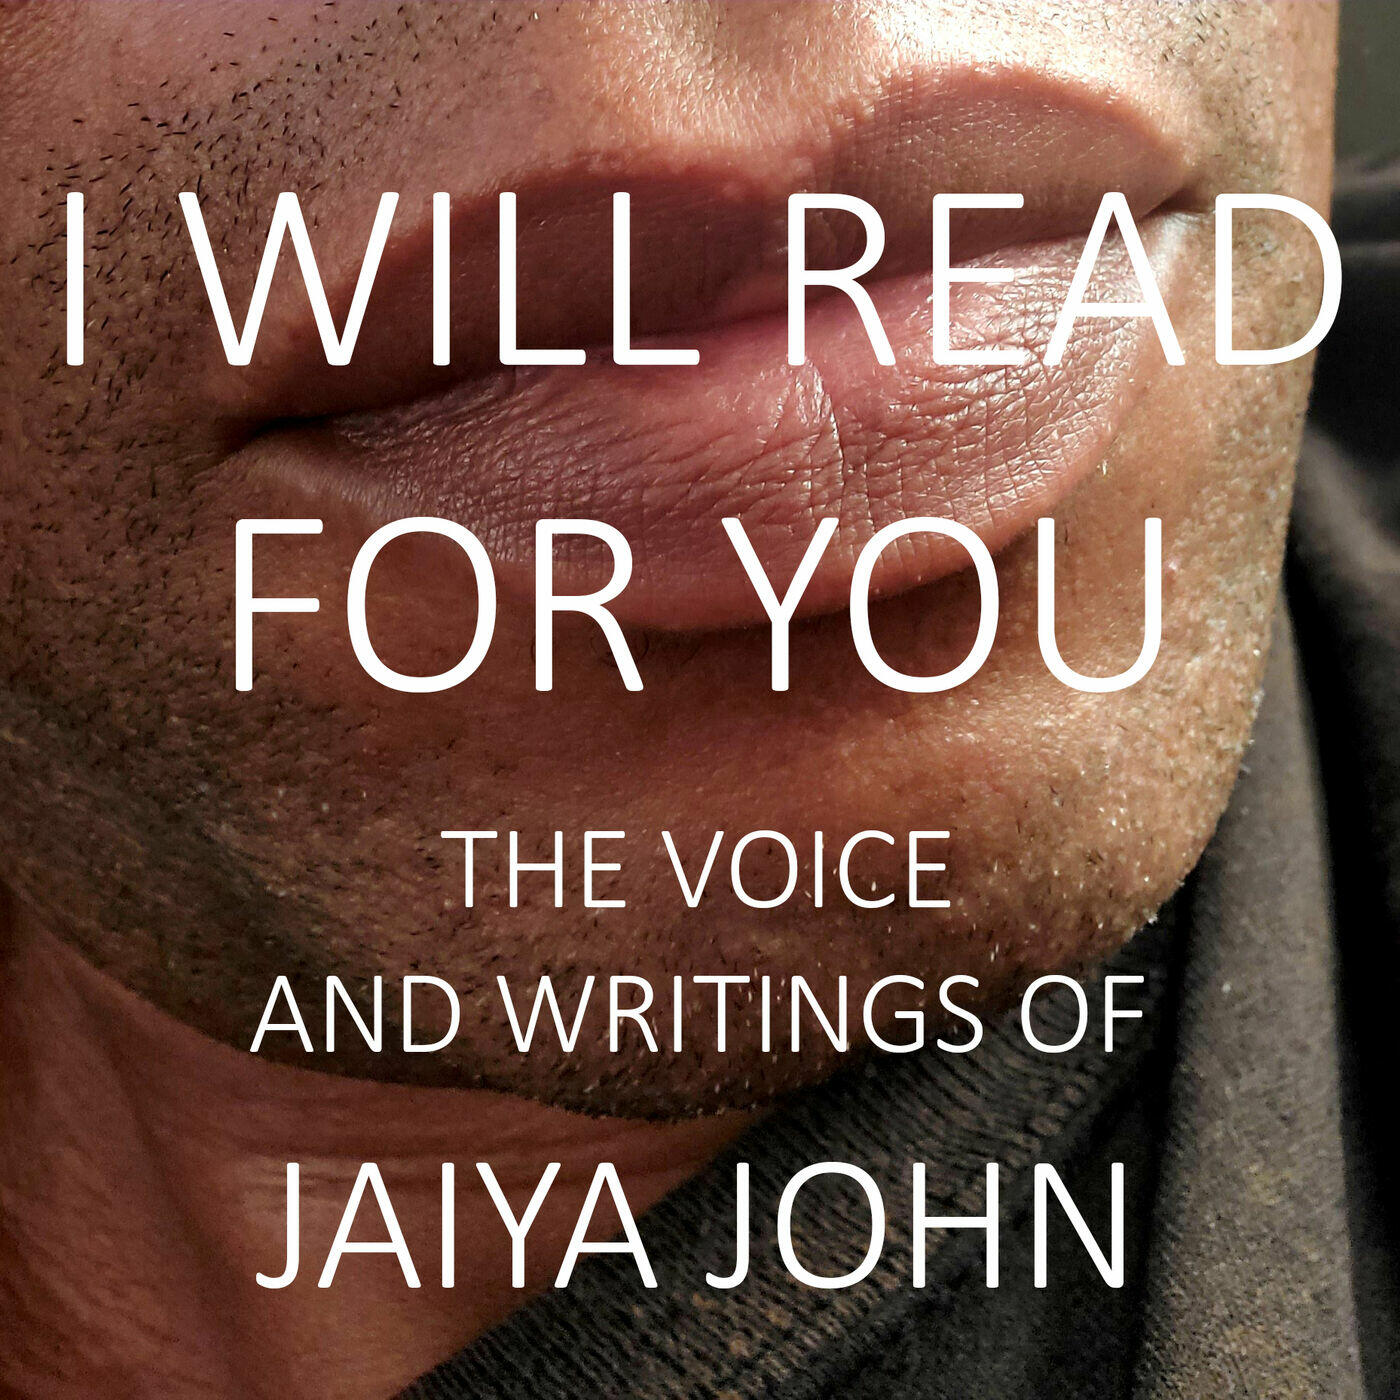 I Will Read for You: The Voice and Writings of Jaiya John